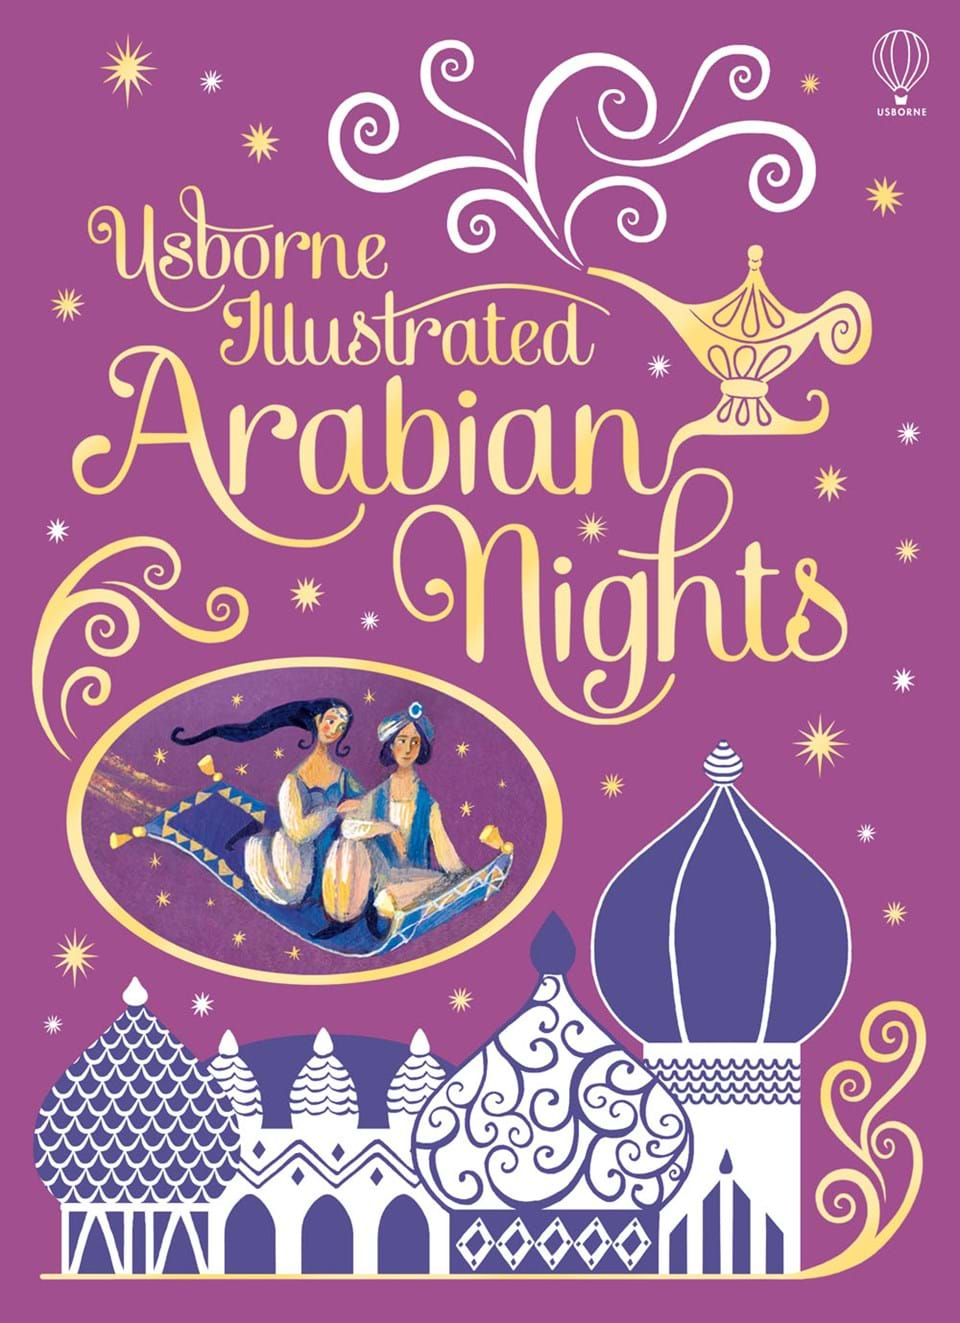 Illustrated Arabian Nights At Usborne Books At Home